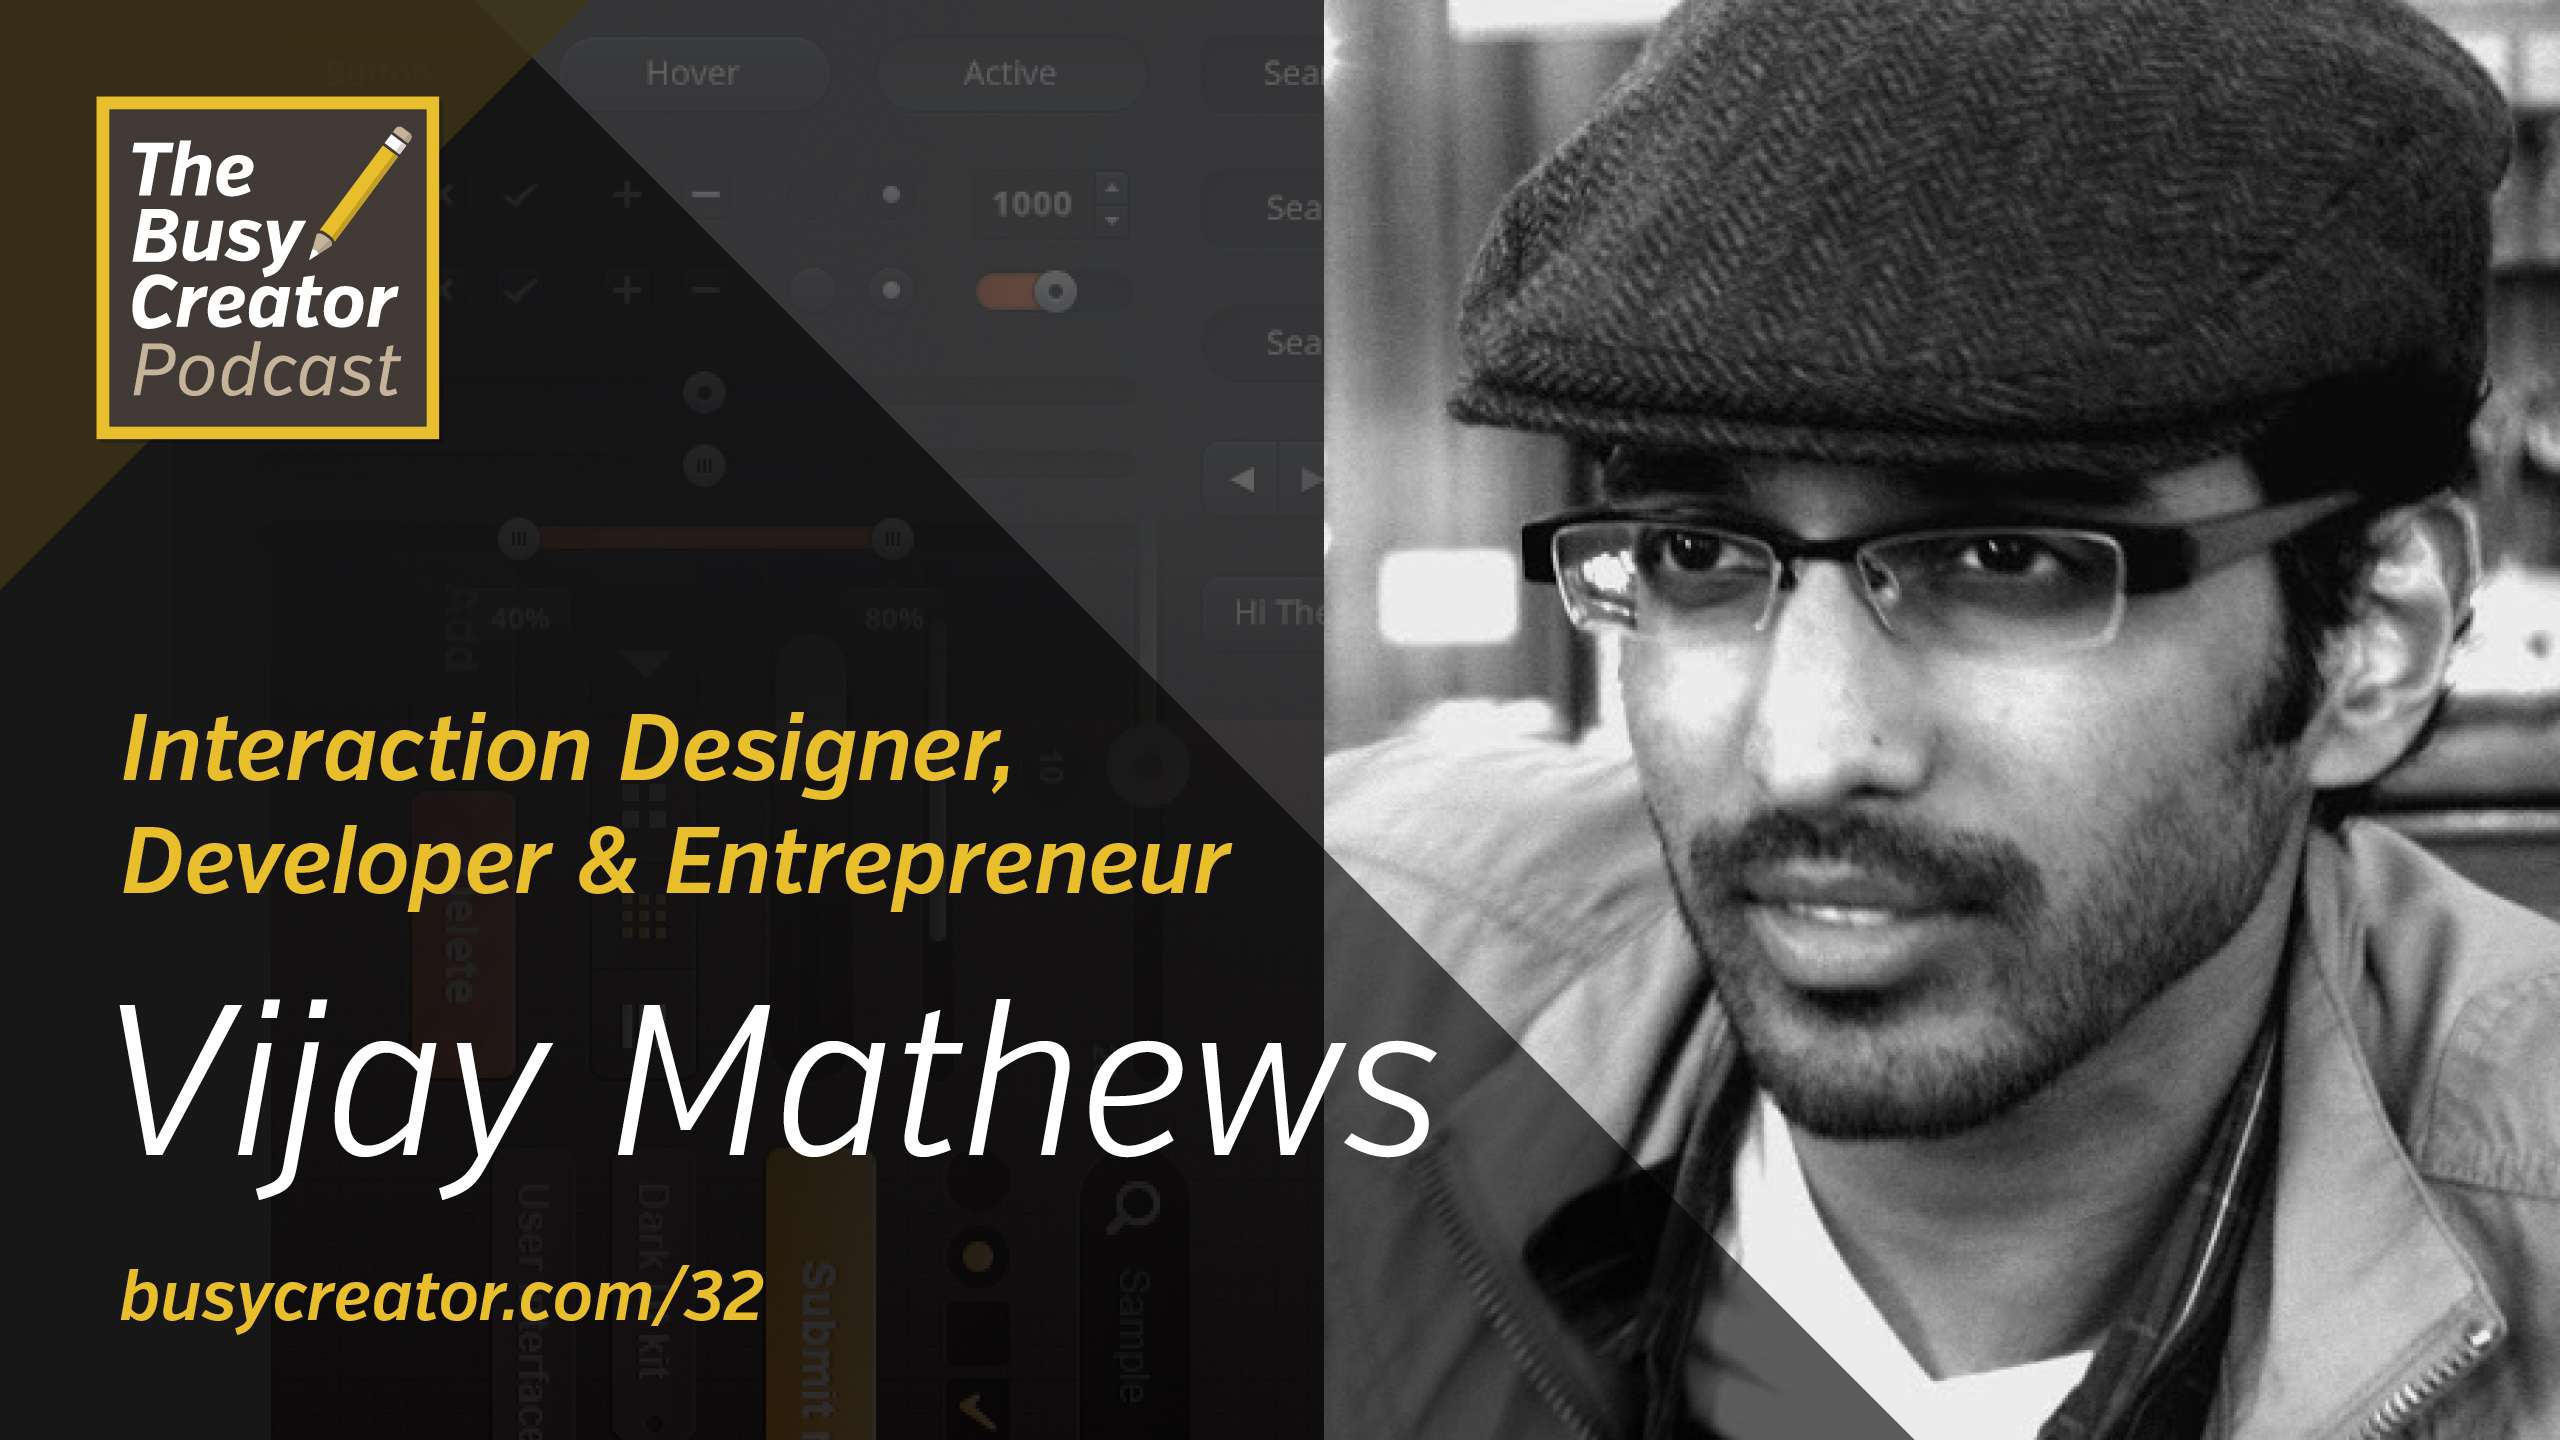 Coordinating a Diverse Digital Team with Interaction Designer, Developer & Entrepreneur Vijay Mathews